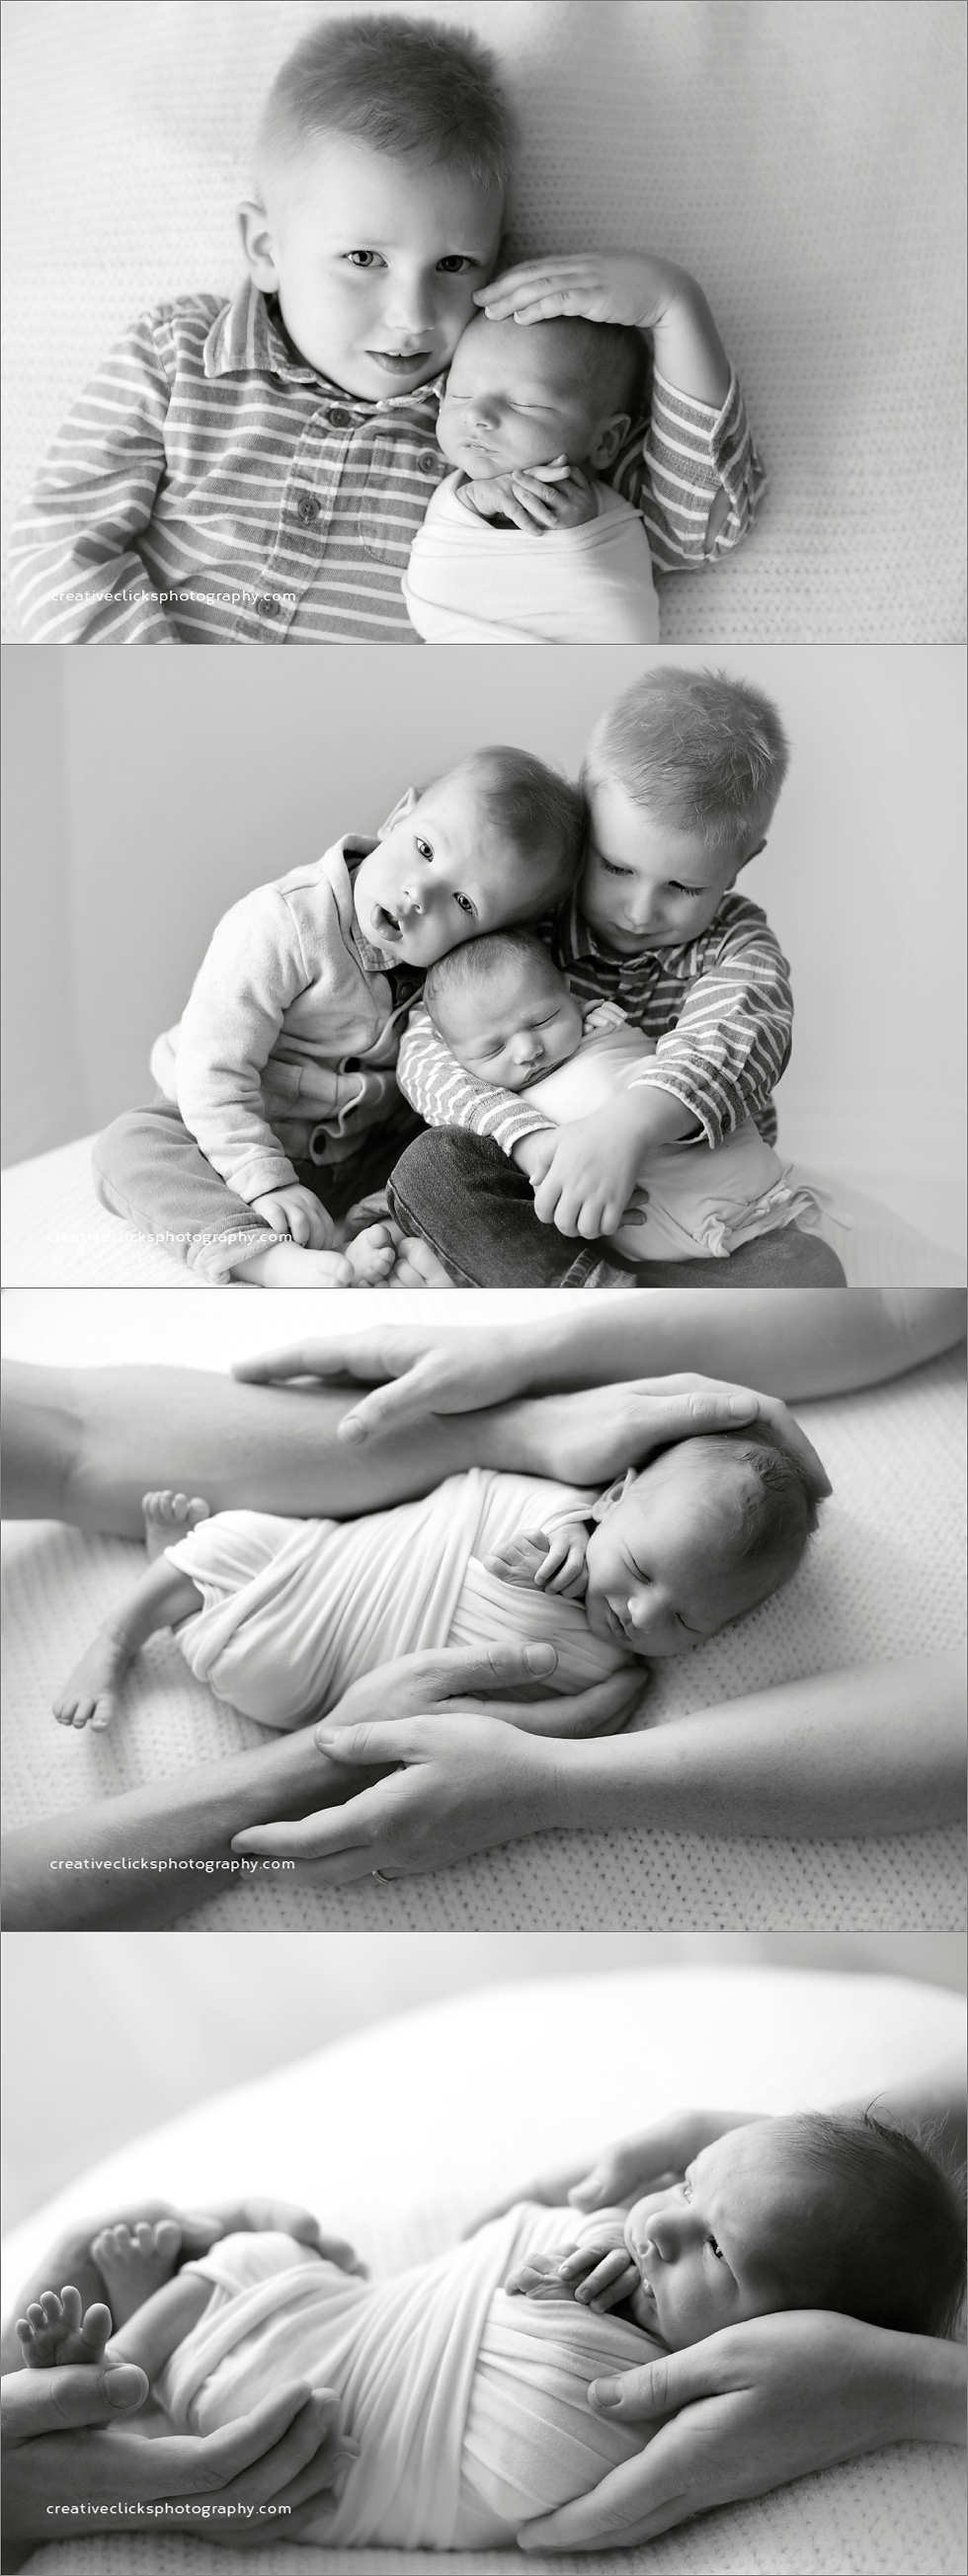 newborn baby and sibling photograph